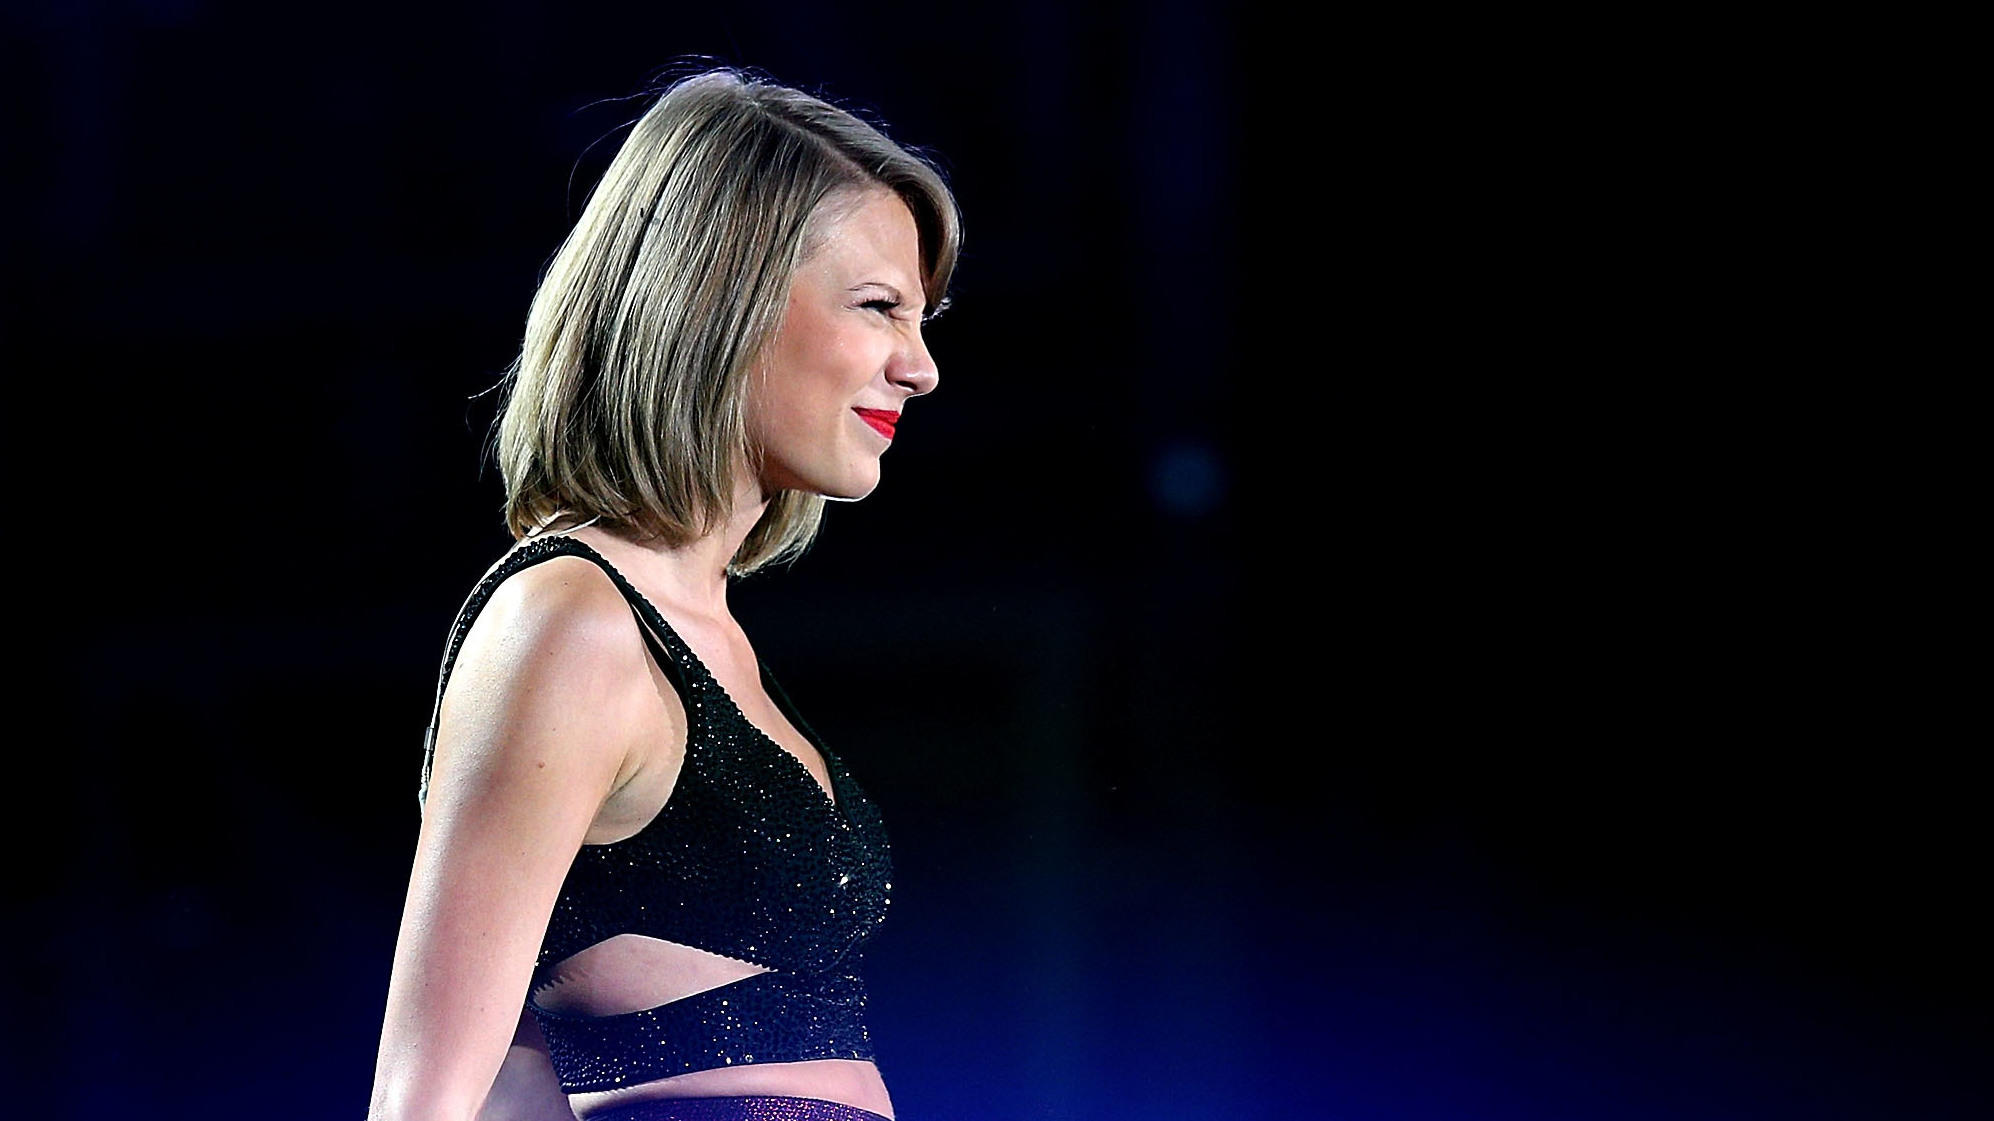 Swift returns to Spotify